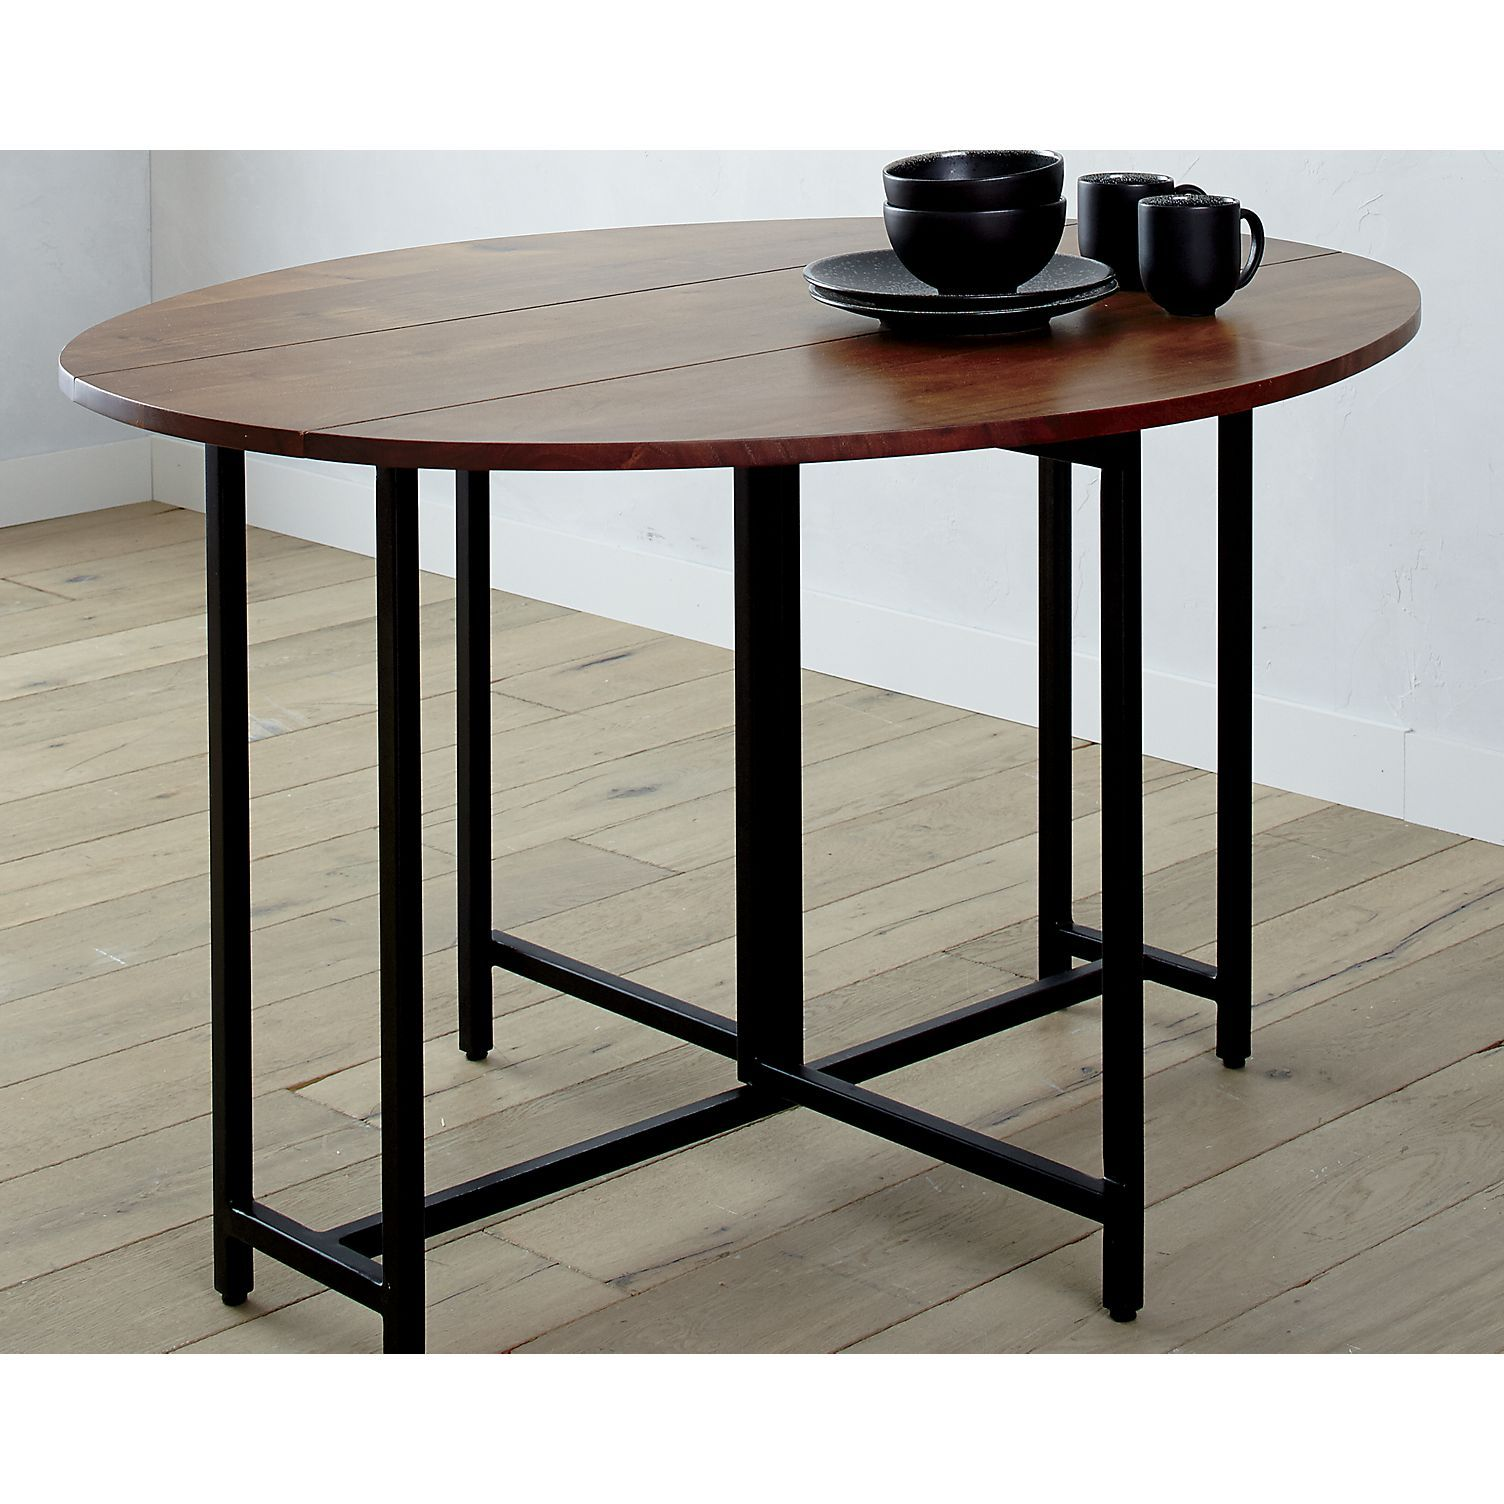 Origami Drop Leaf Oval Dining Table - Crate And Barrel